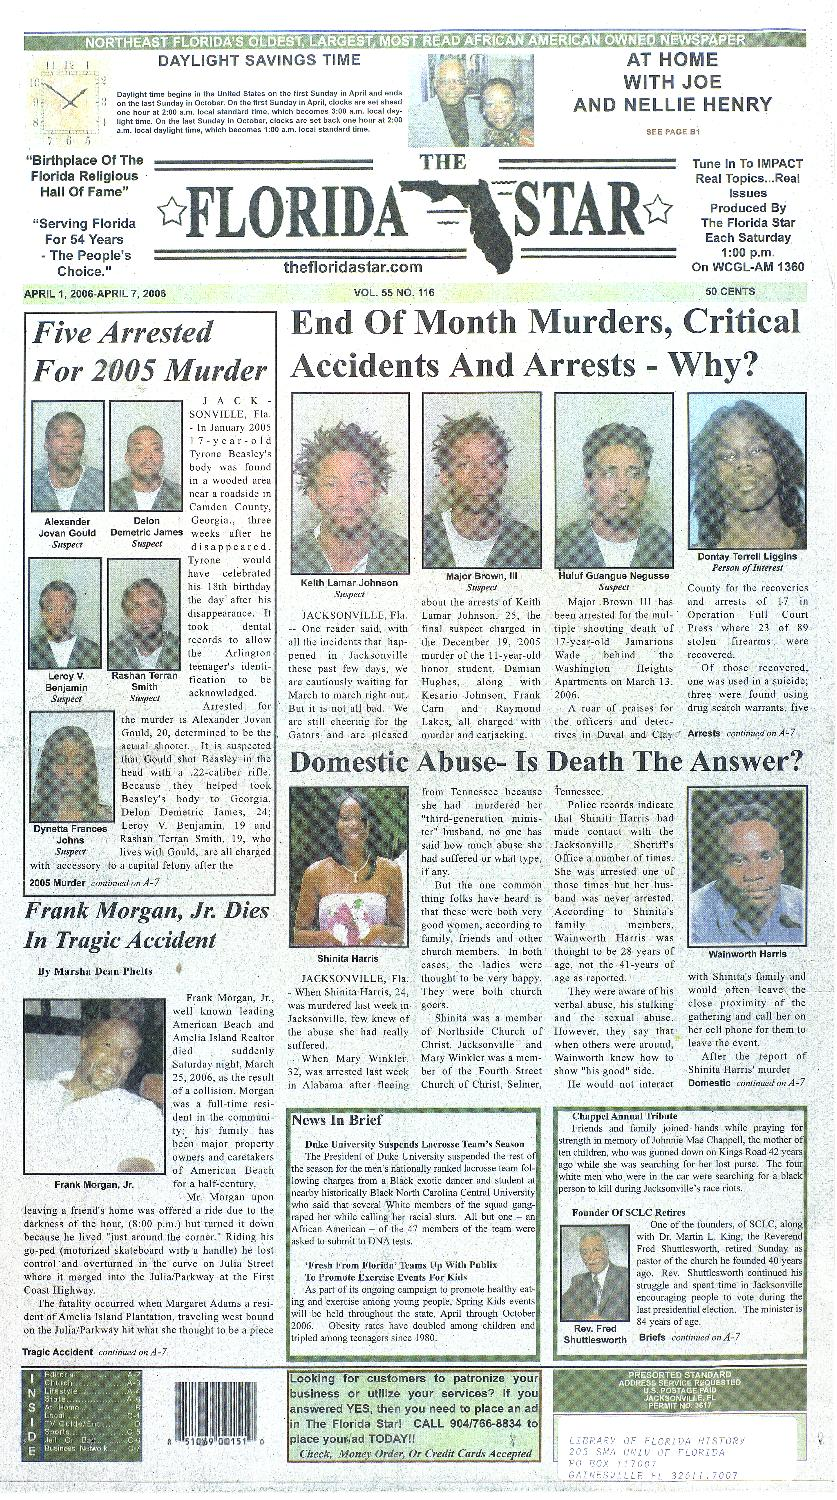 Florida Star  April 1, 2006